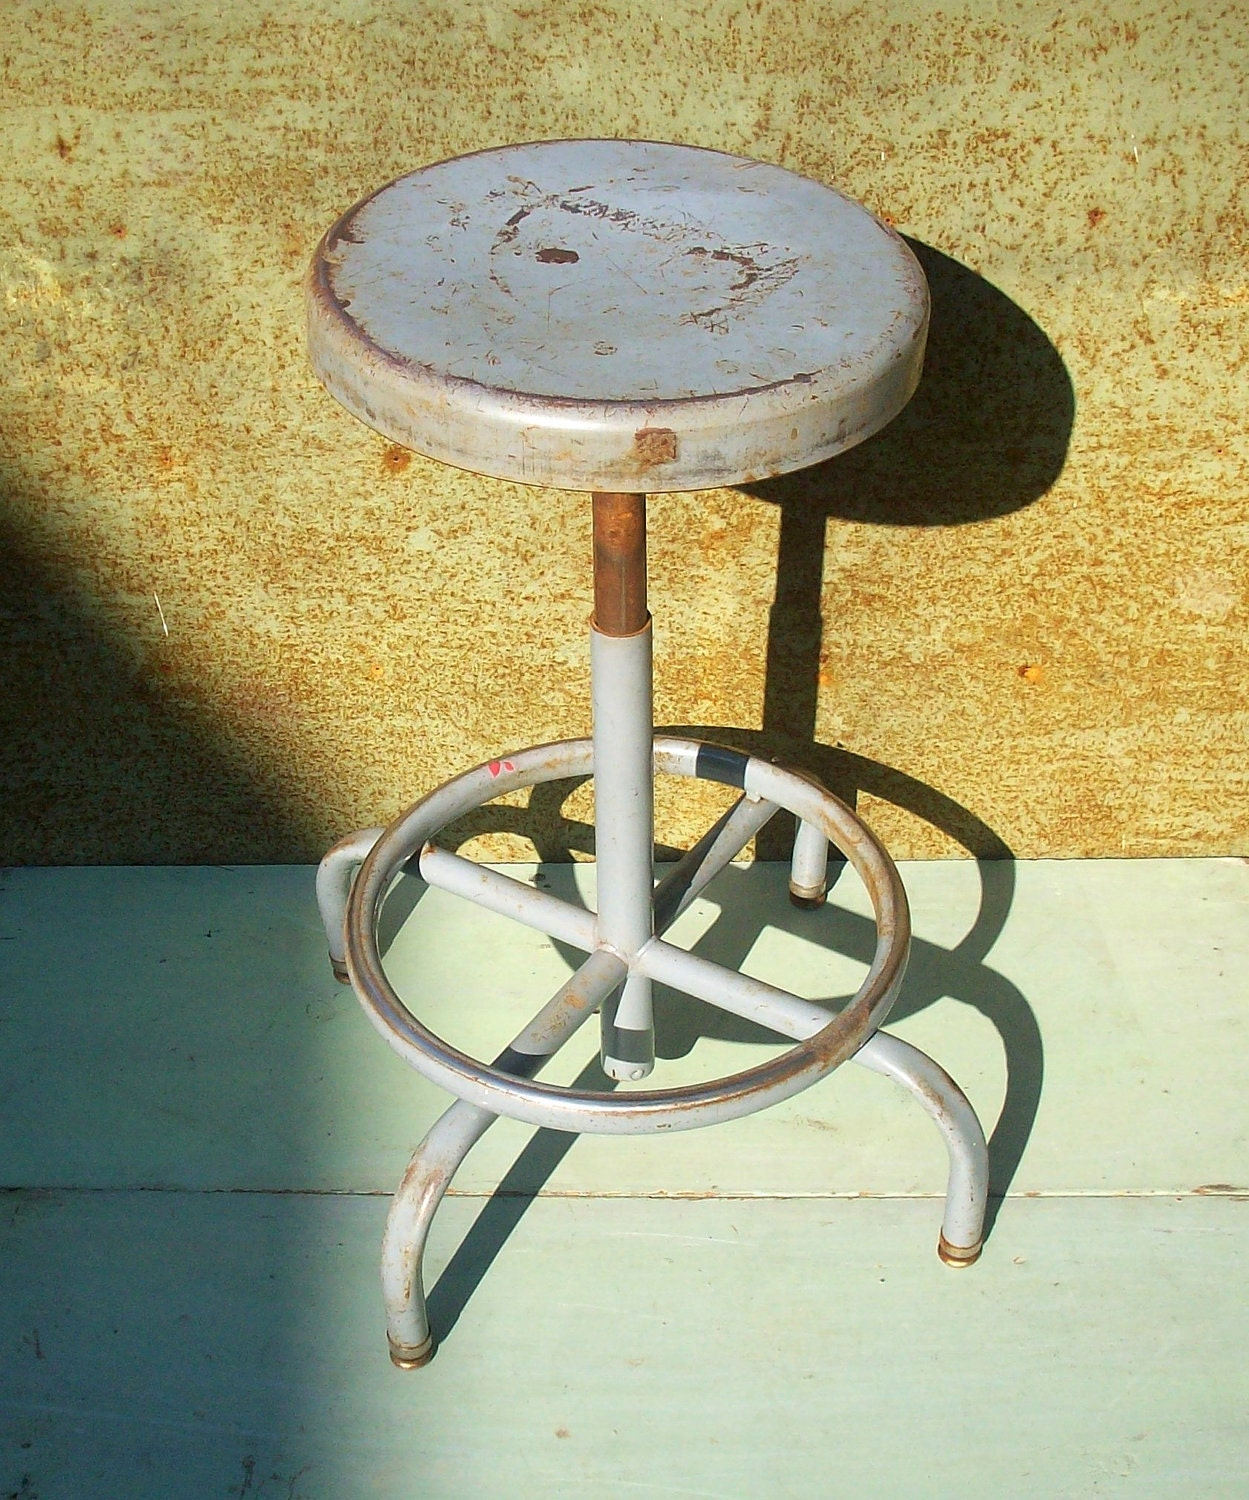 Vintage Industrial Metal Shop Stool Swivel And Adjustable